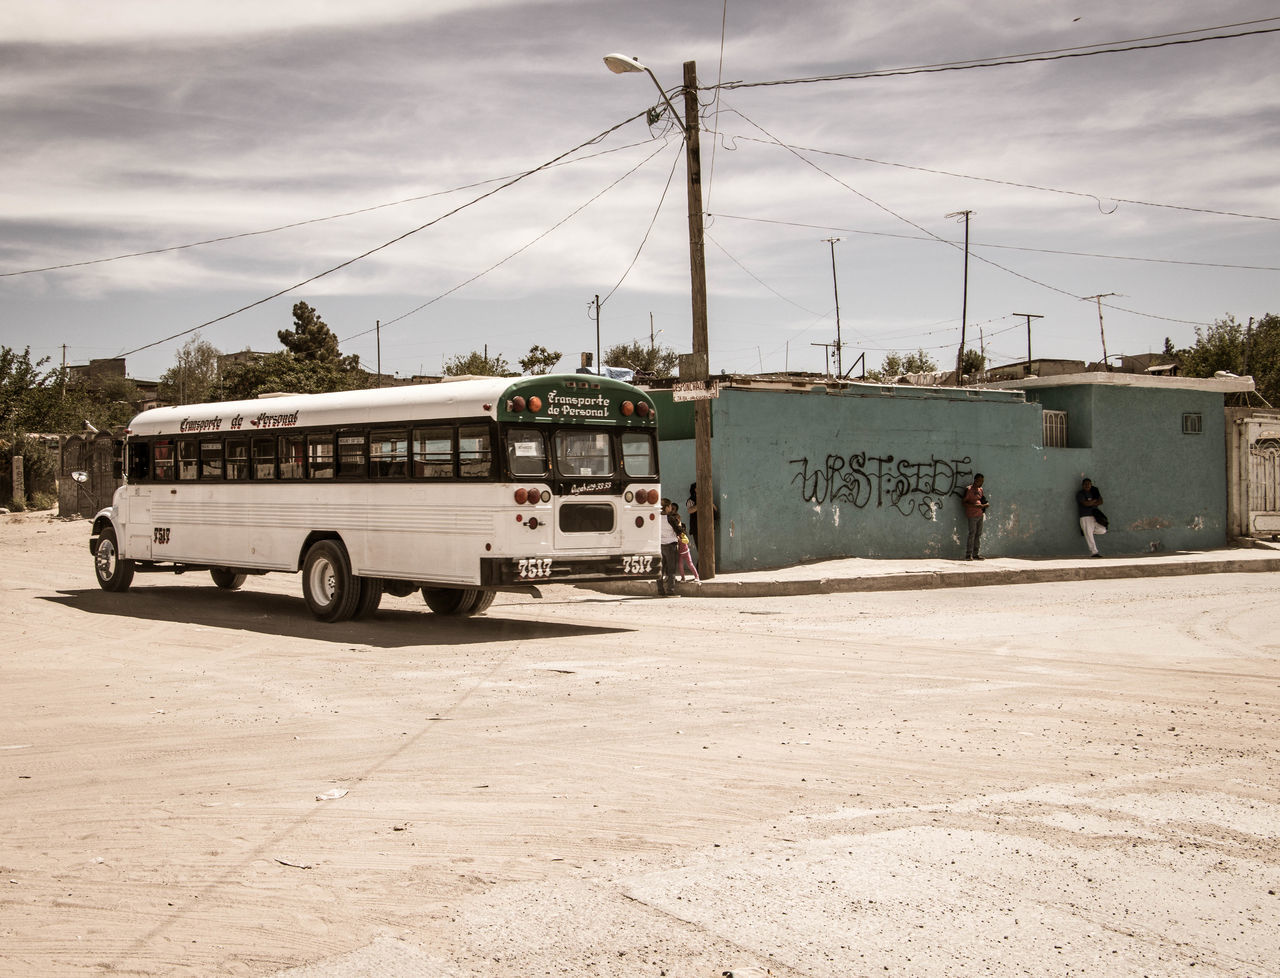 Waiting on the bus City Day Juarez Mexico No People Outdoors Sky Train - Vehicle Transportation Travel